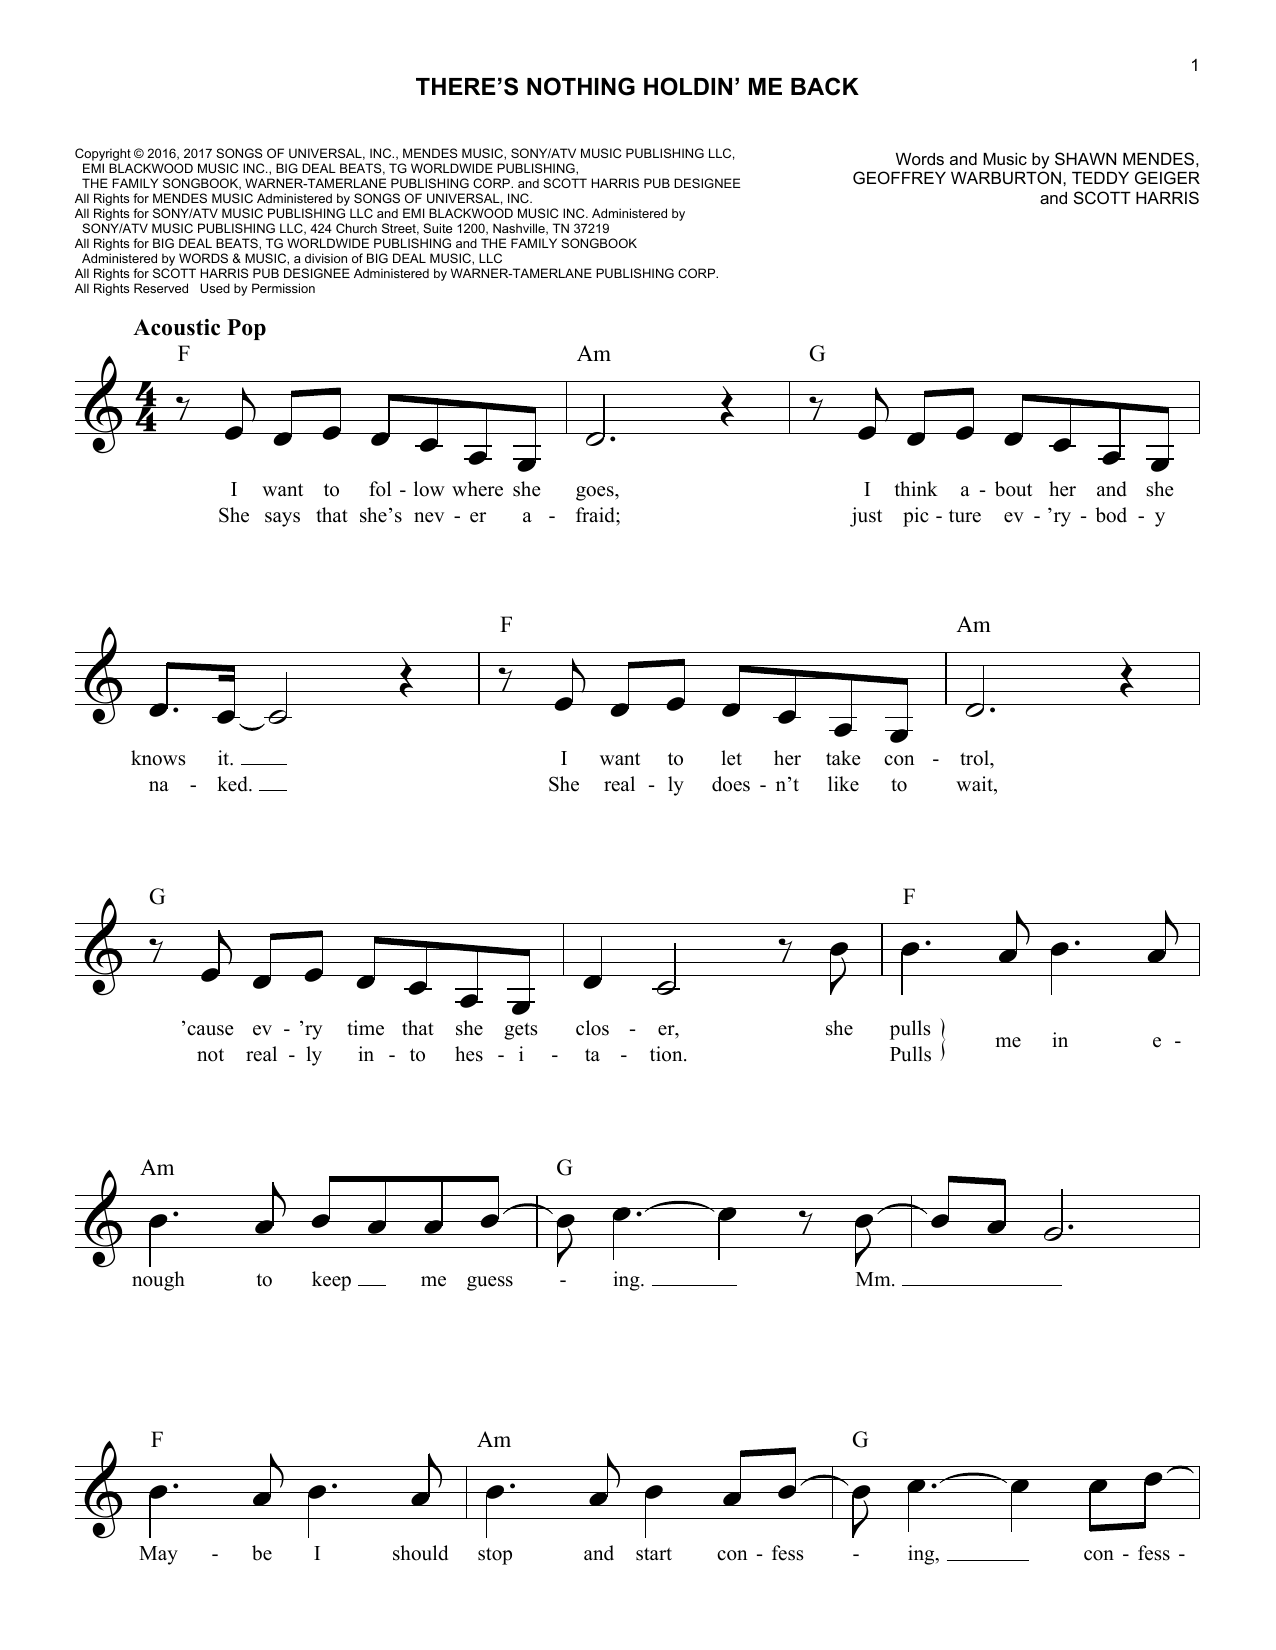 There's Nothing Holdin' Me Back Sheet Music